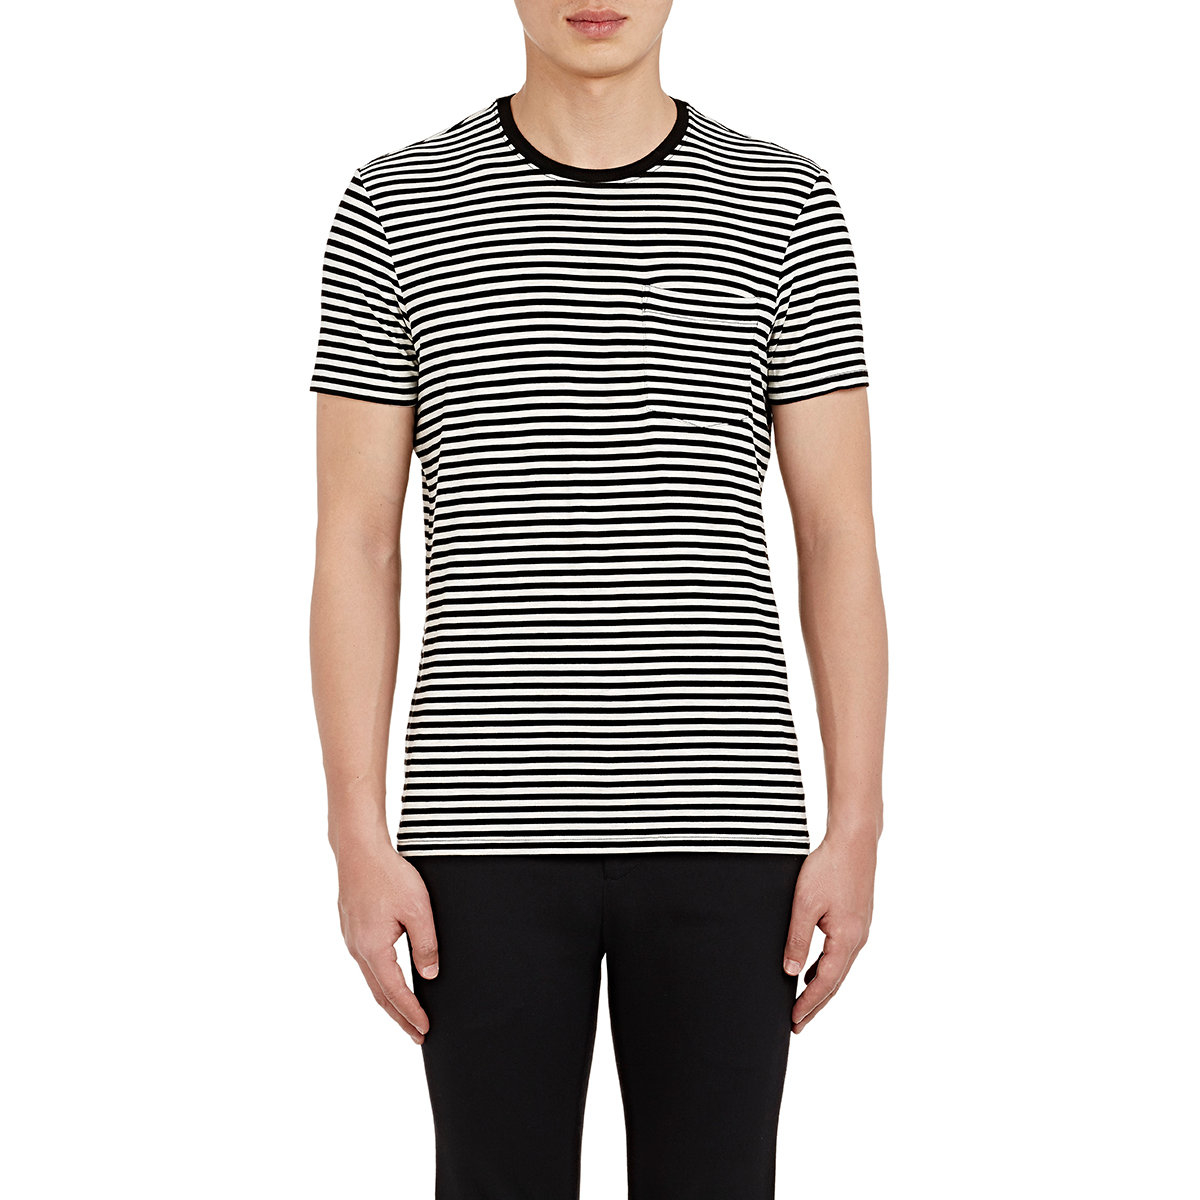 Lyst atm men 39 s striped jersey t shirt in black for men for Atm tee shirts barneys